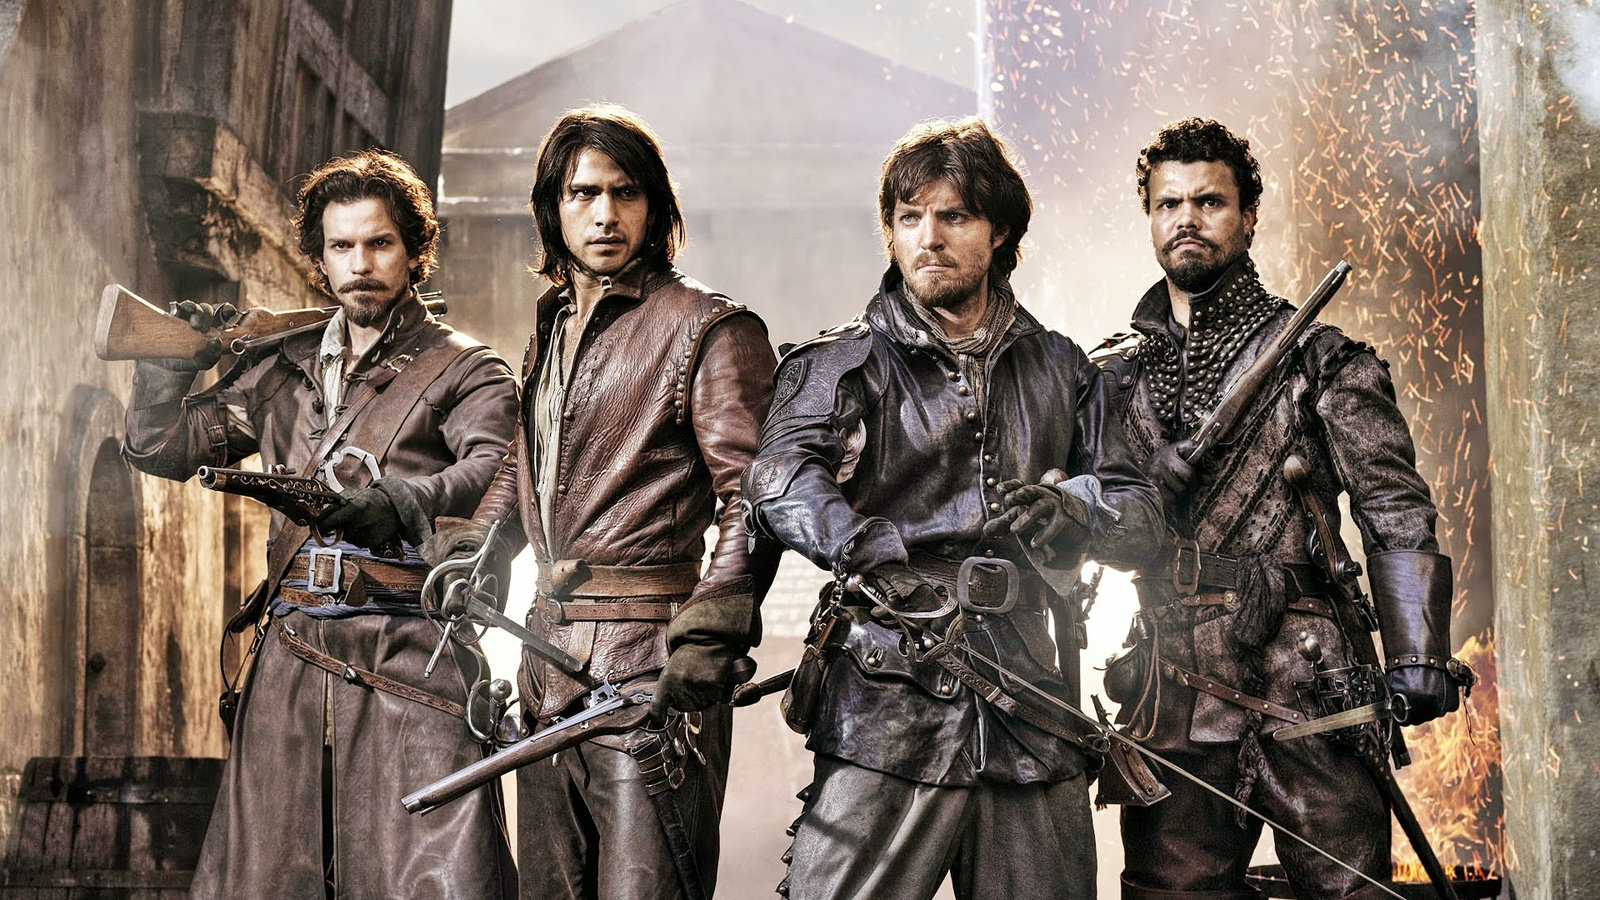 Мушкетёры/The Musketeers background